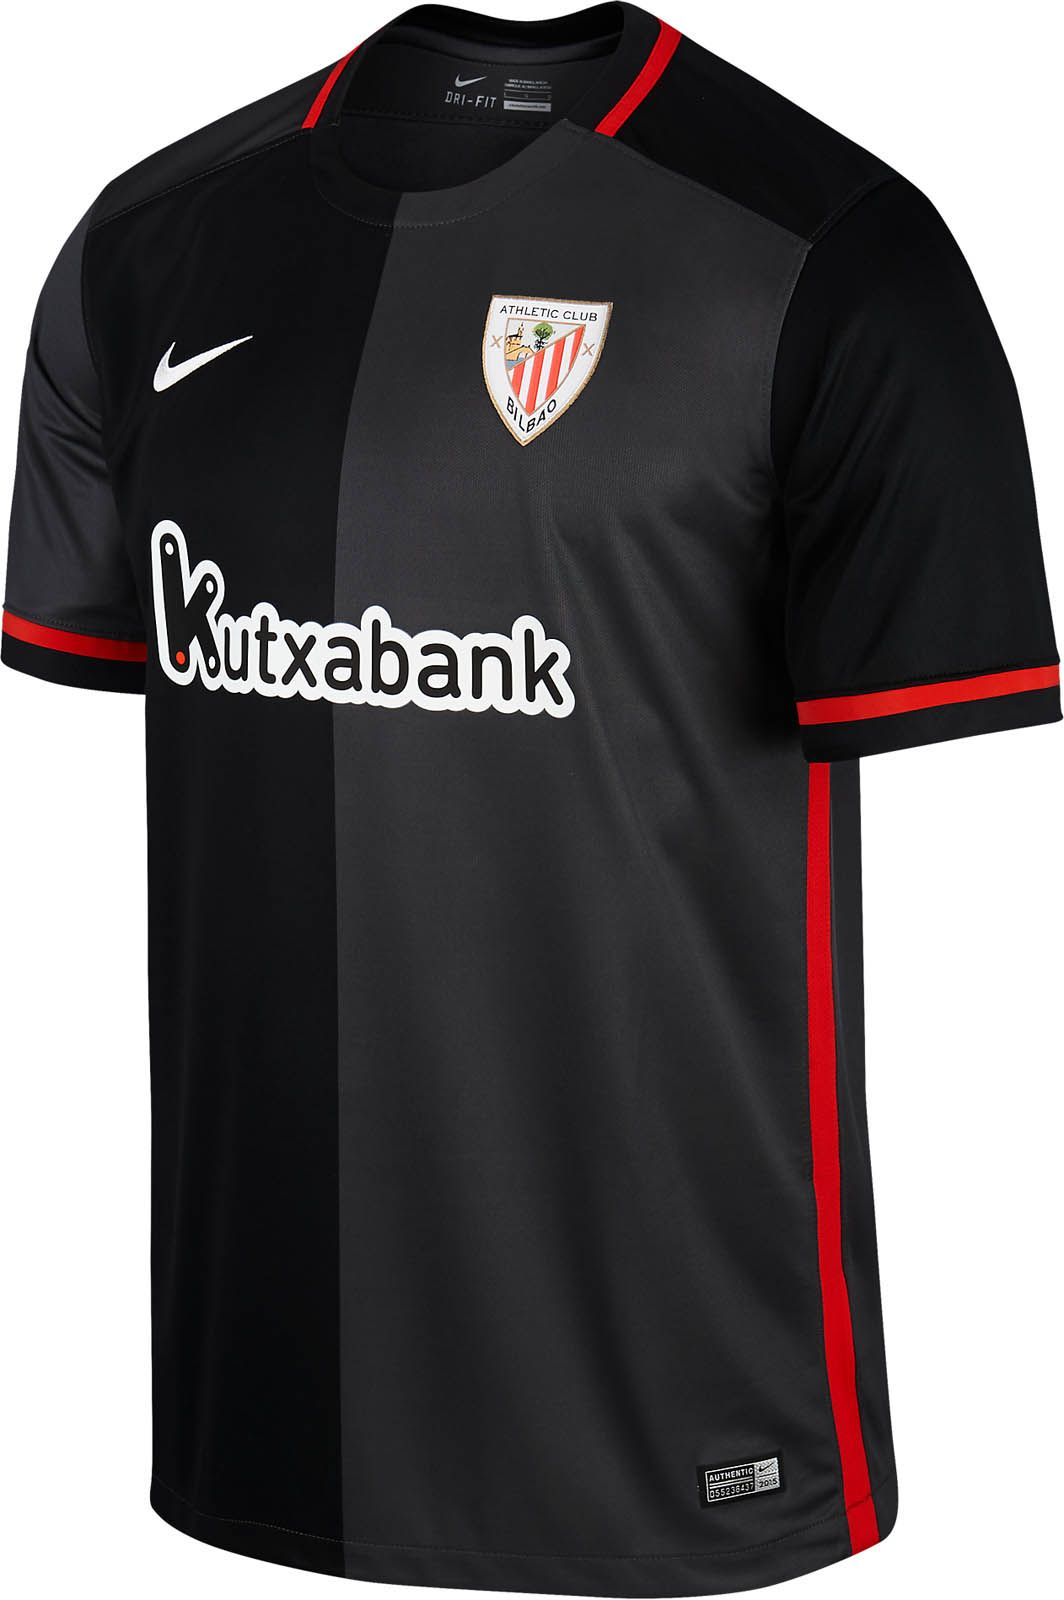 the best attitude 83a3d d1114 Athletic Club Bilbao (Spain) - 2015 2016 Nike Away Shirt